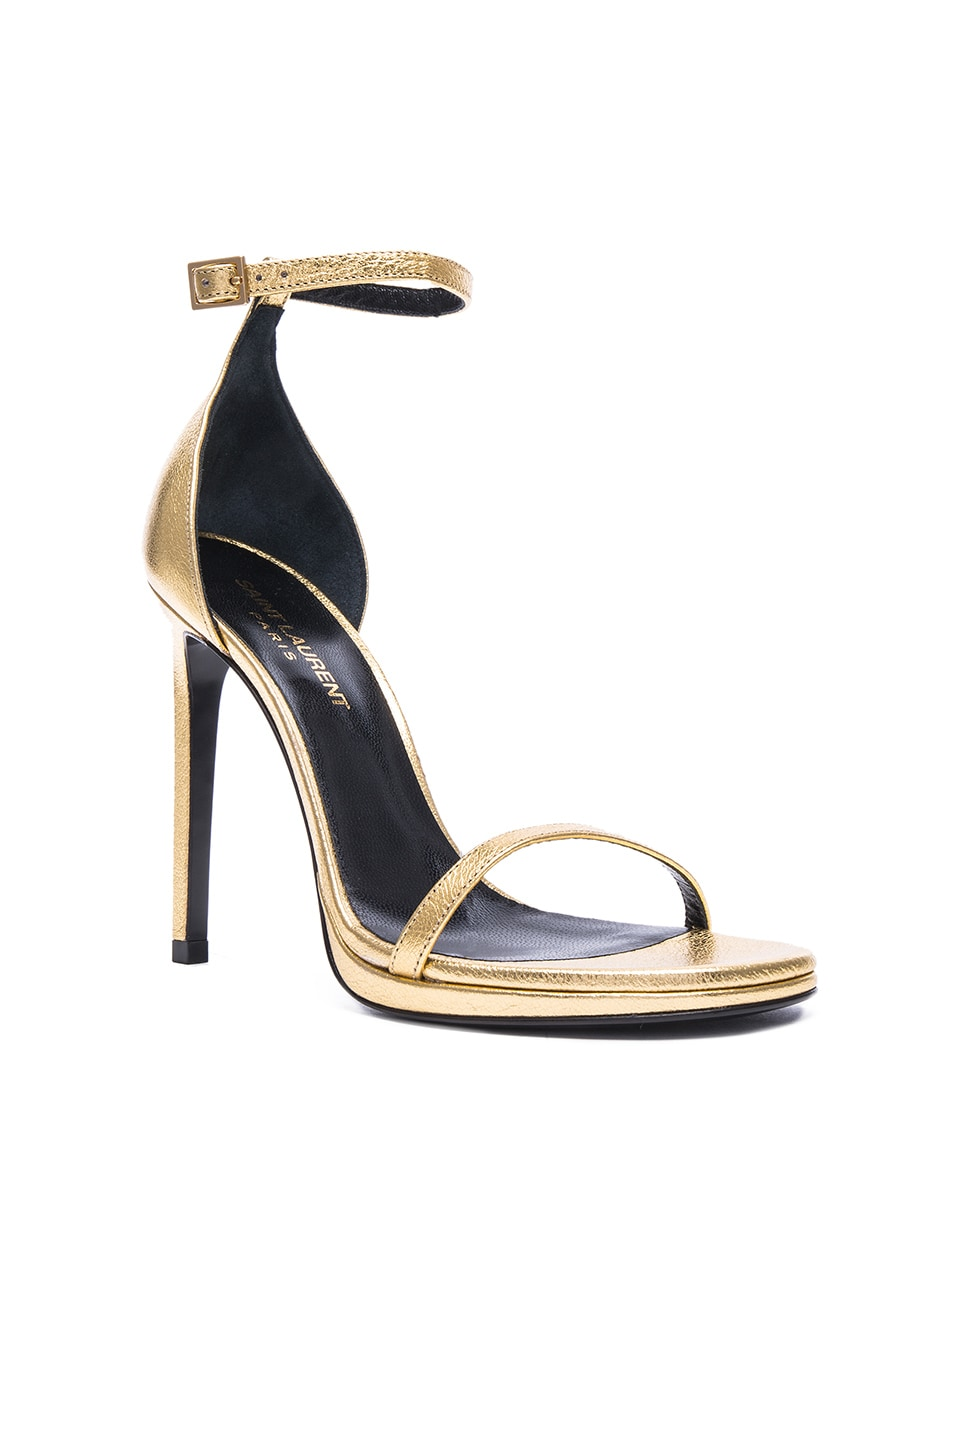 Image 2 of Saint Laurent Metallic Leather Jane Sandals in Gold